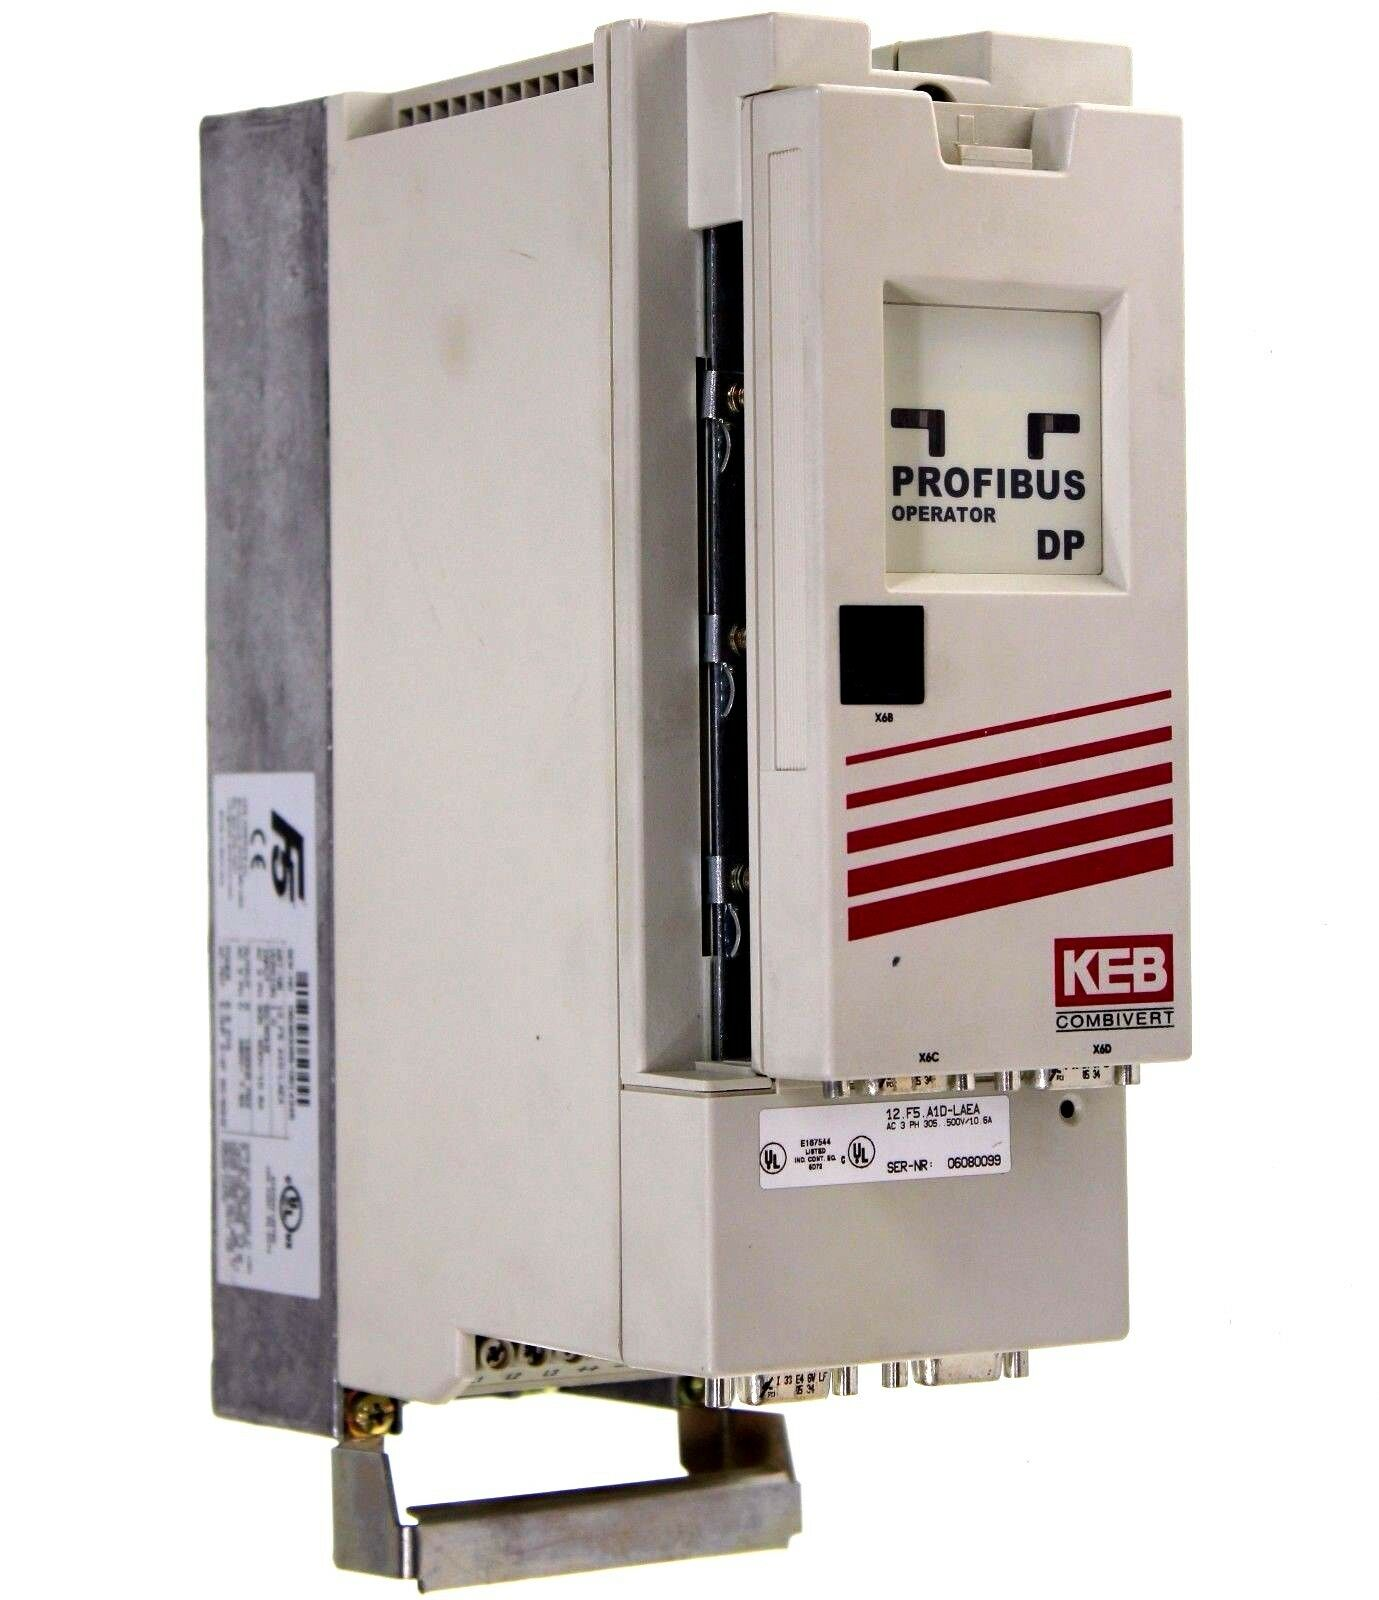 KEB 12.F5.A1D-LAEA Version 1.0 3 Phase 5HP Combivert Drive